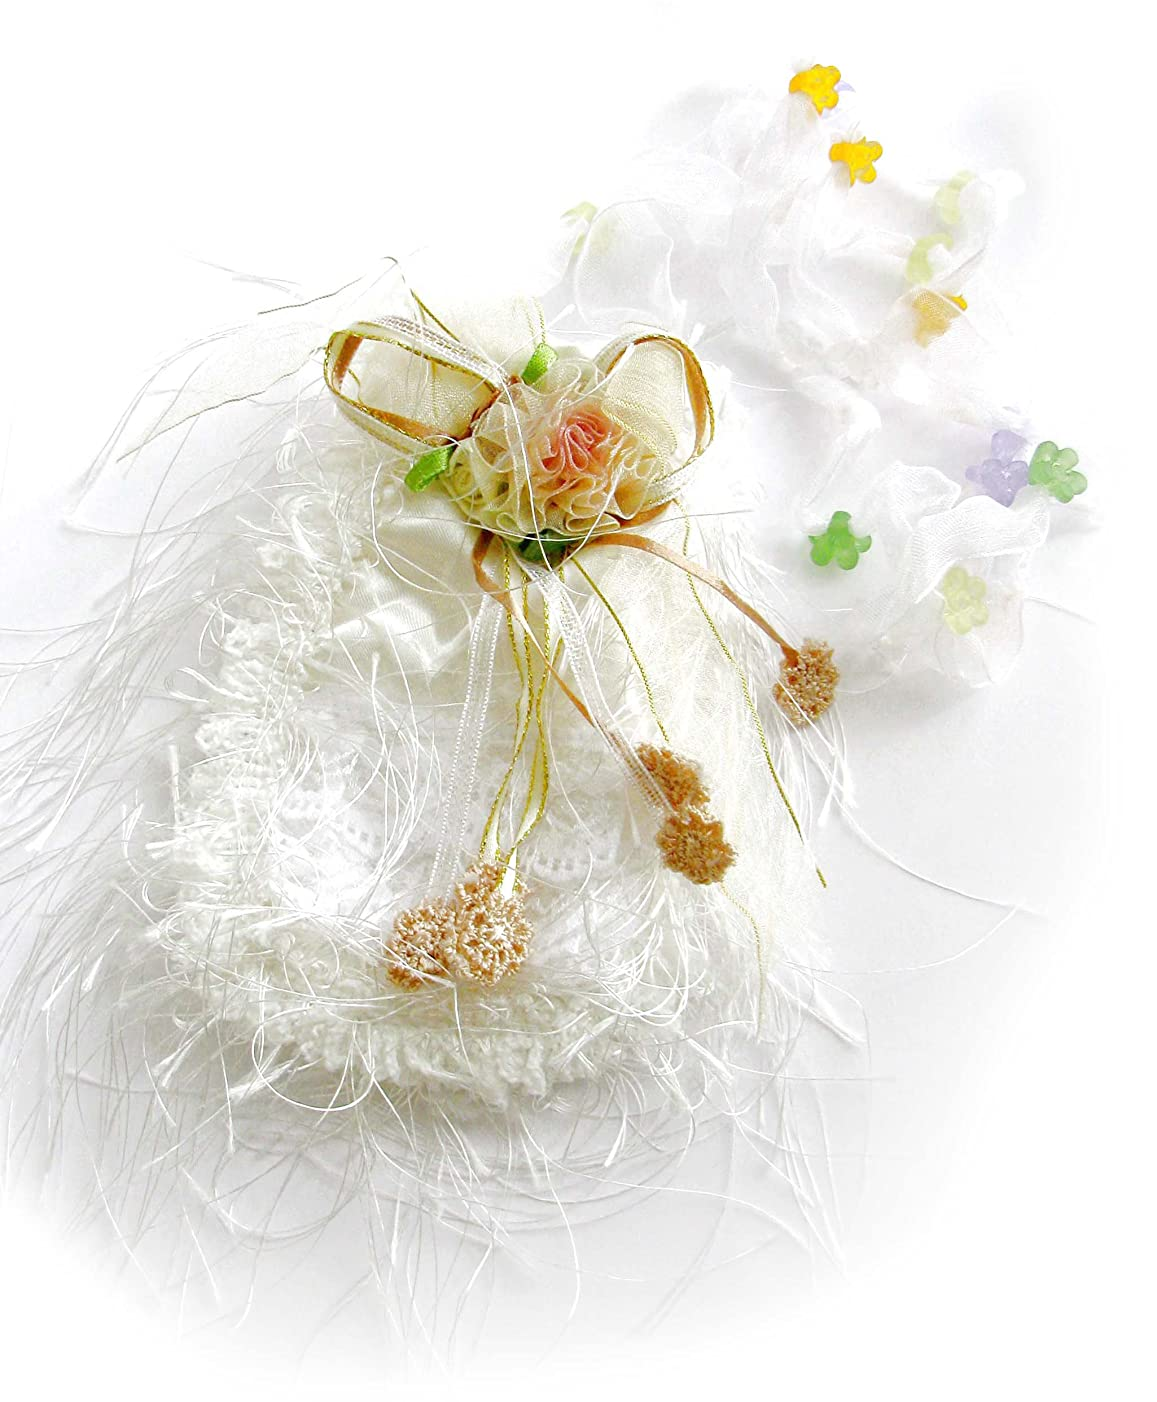 Linpeng SJW-White White in Color, Decorated with Ribbon Flower, Lace, Beads & Tassel Little Girls Purse Pouch